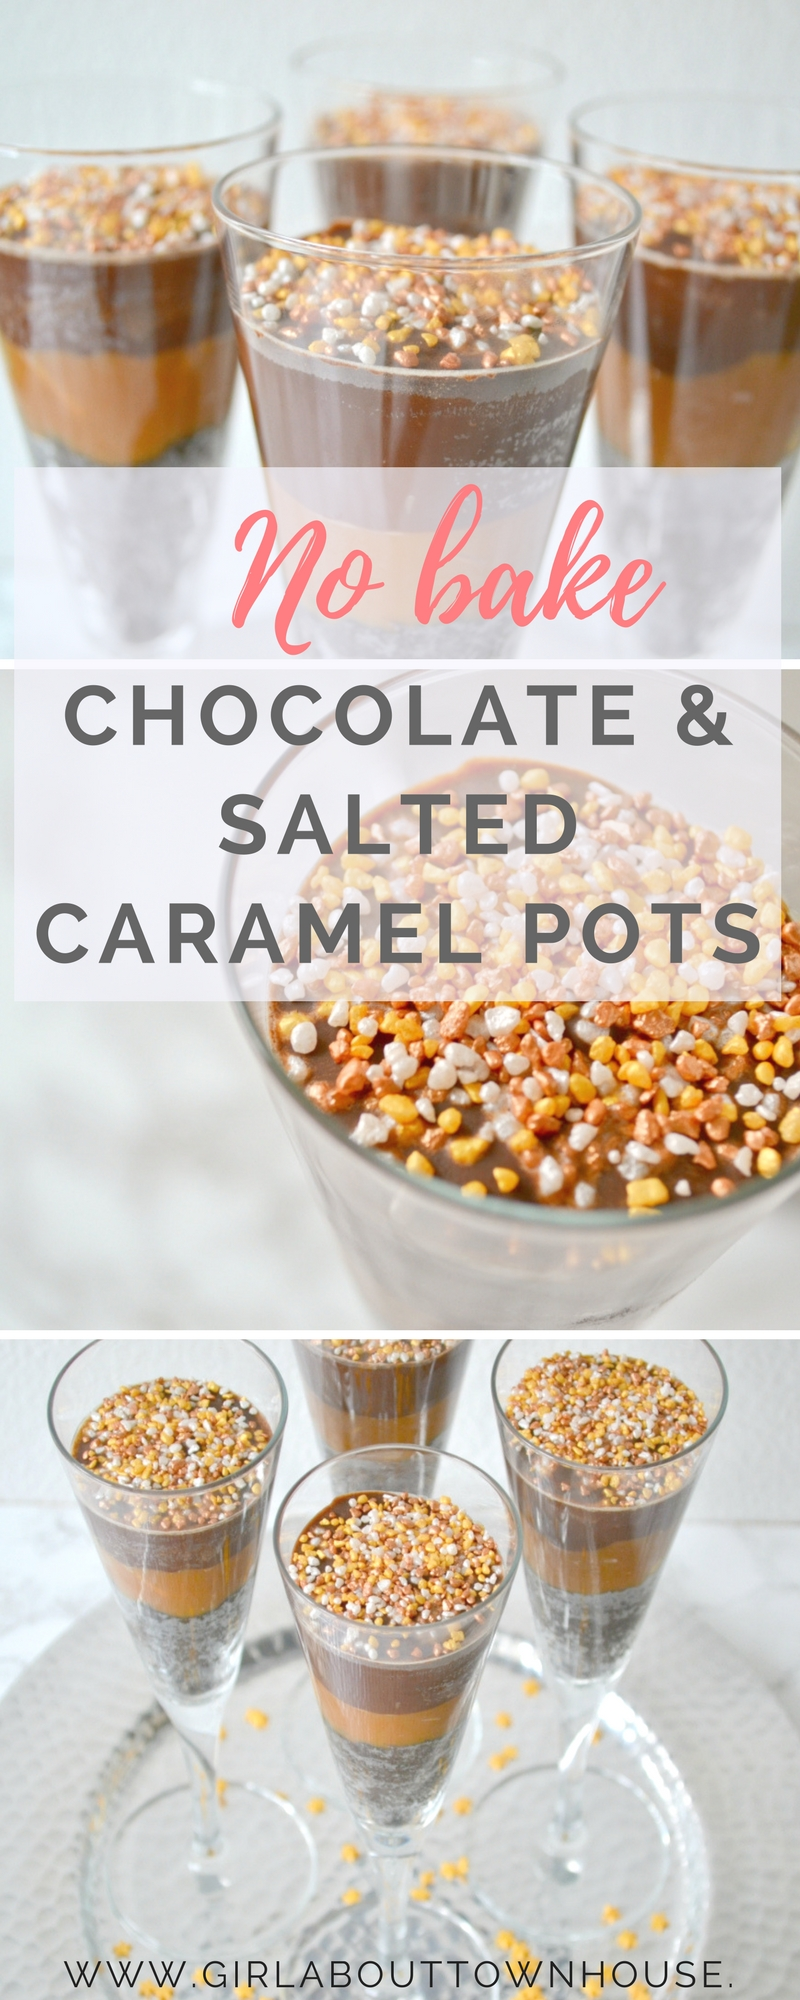 One of my favourite no bake desserts! These Chocolate and salted caramel pots such a simple and quick recipe. Just perfect for when your want a show stopping dessert without too much effort.